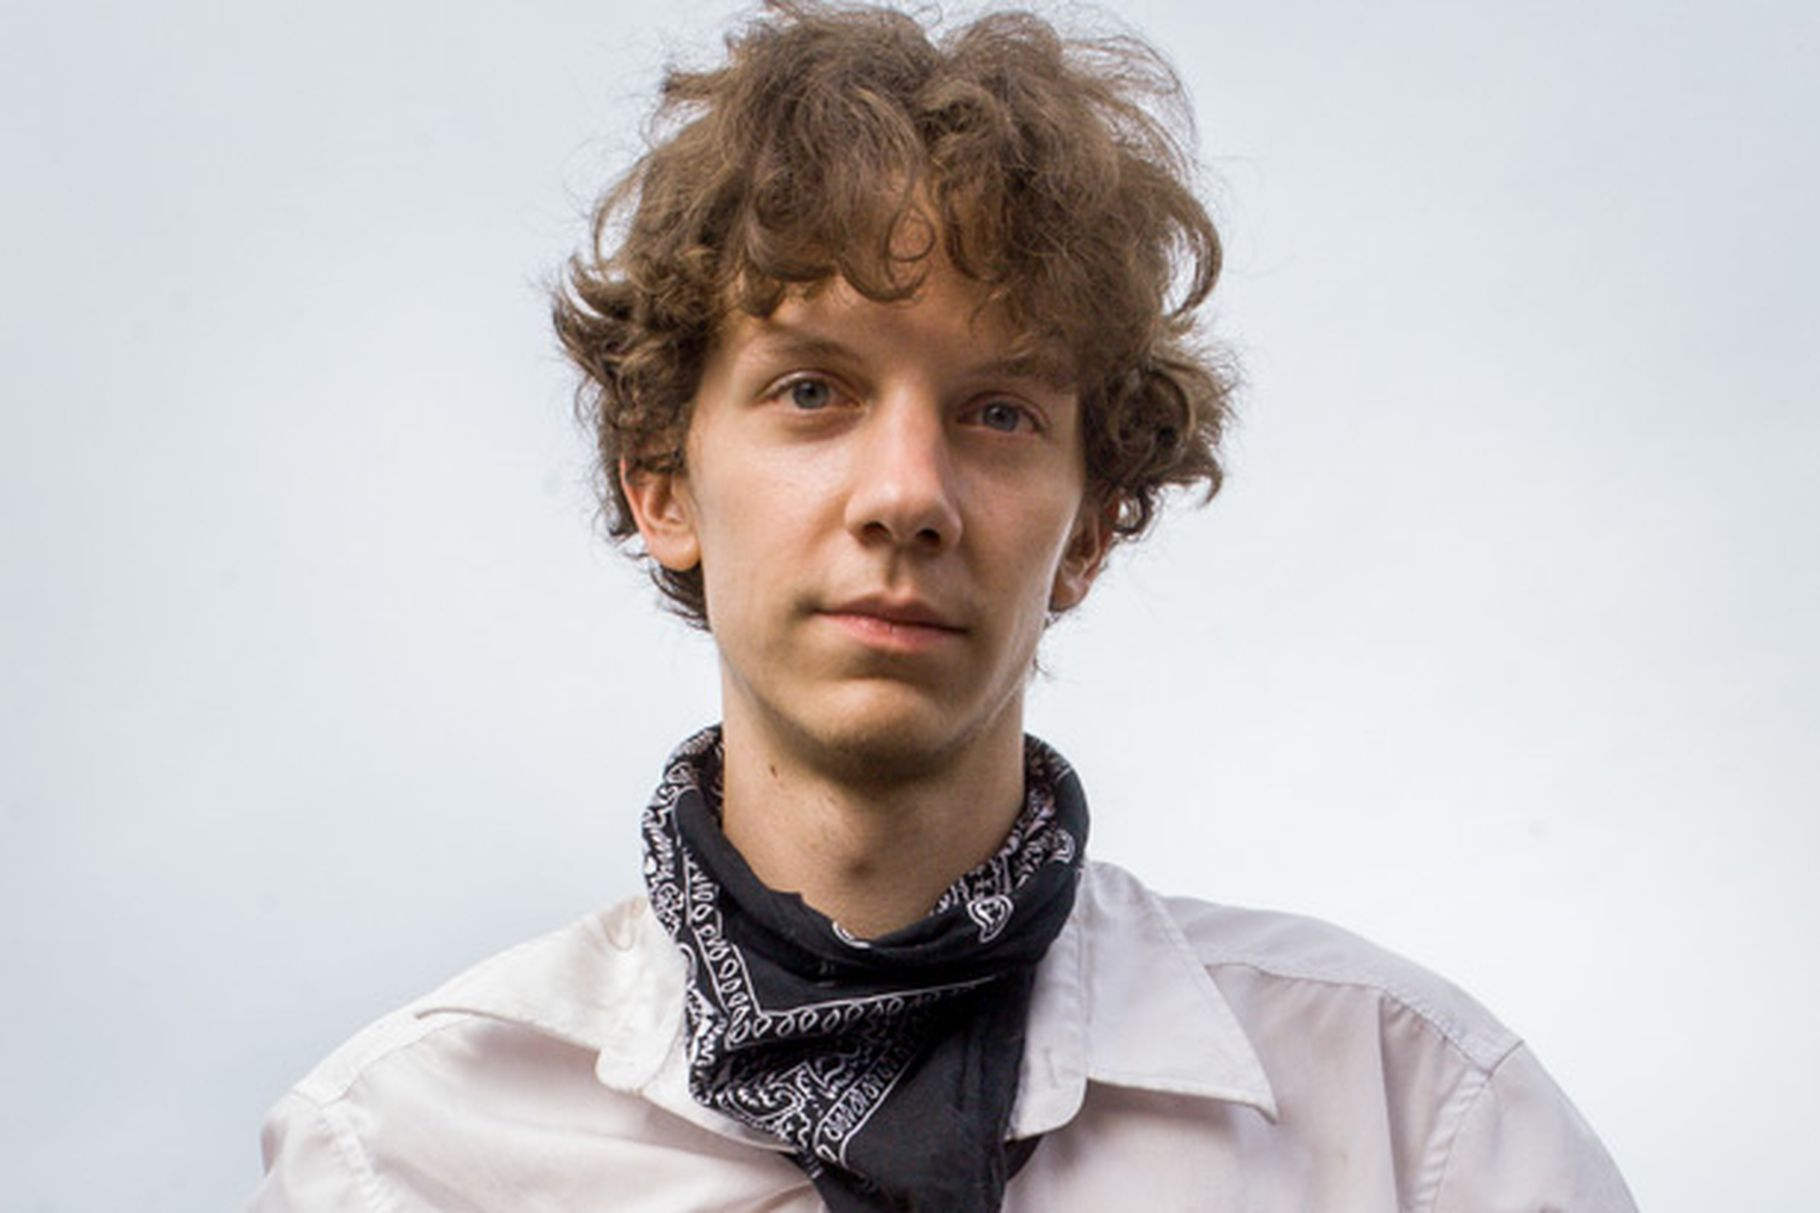 Jeremy Hammond Issues Statement Explaining Why He is Resisting the Grand Jury